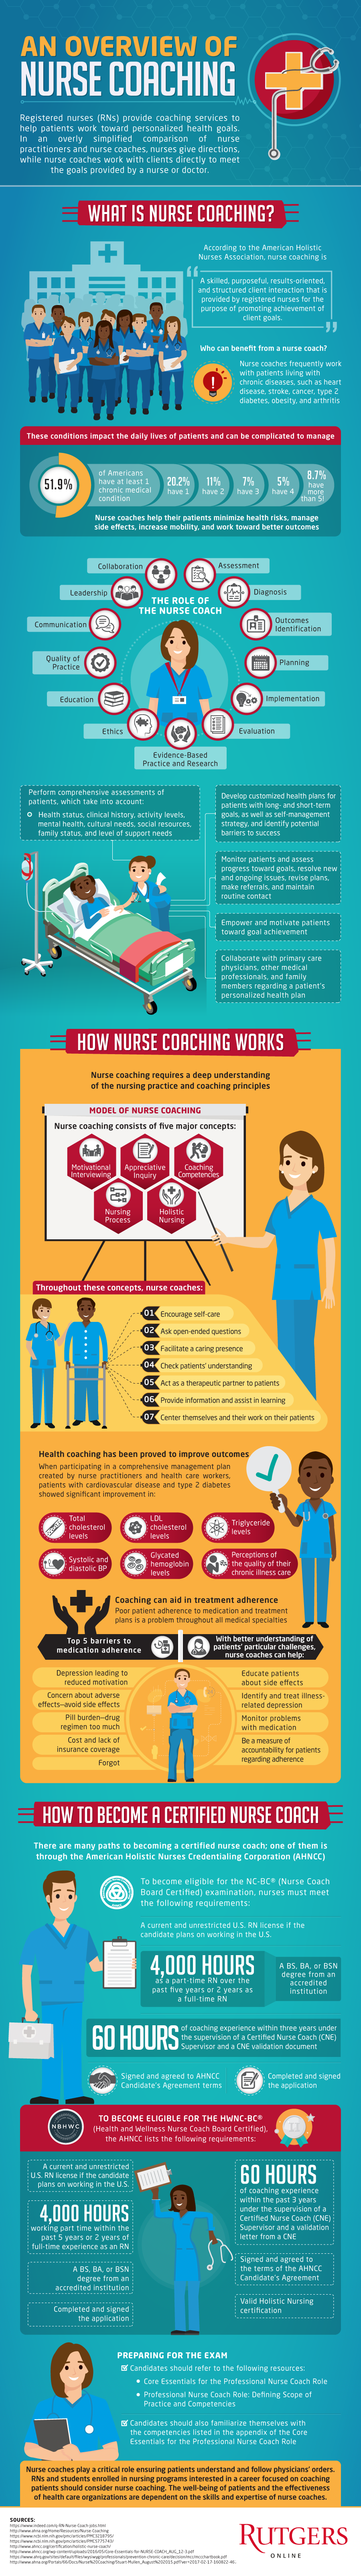 How nurse coaches can play a vital role in helping patients with chronic illnesses improve their health and outlook.